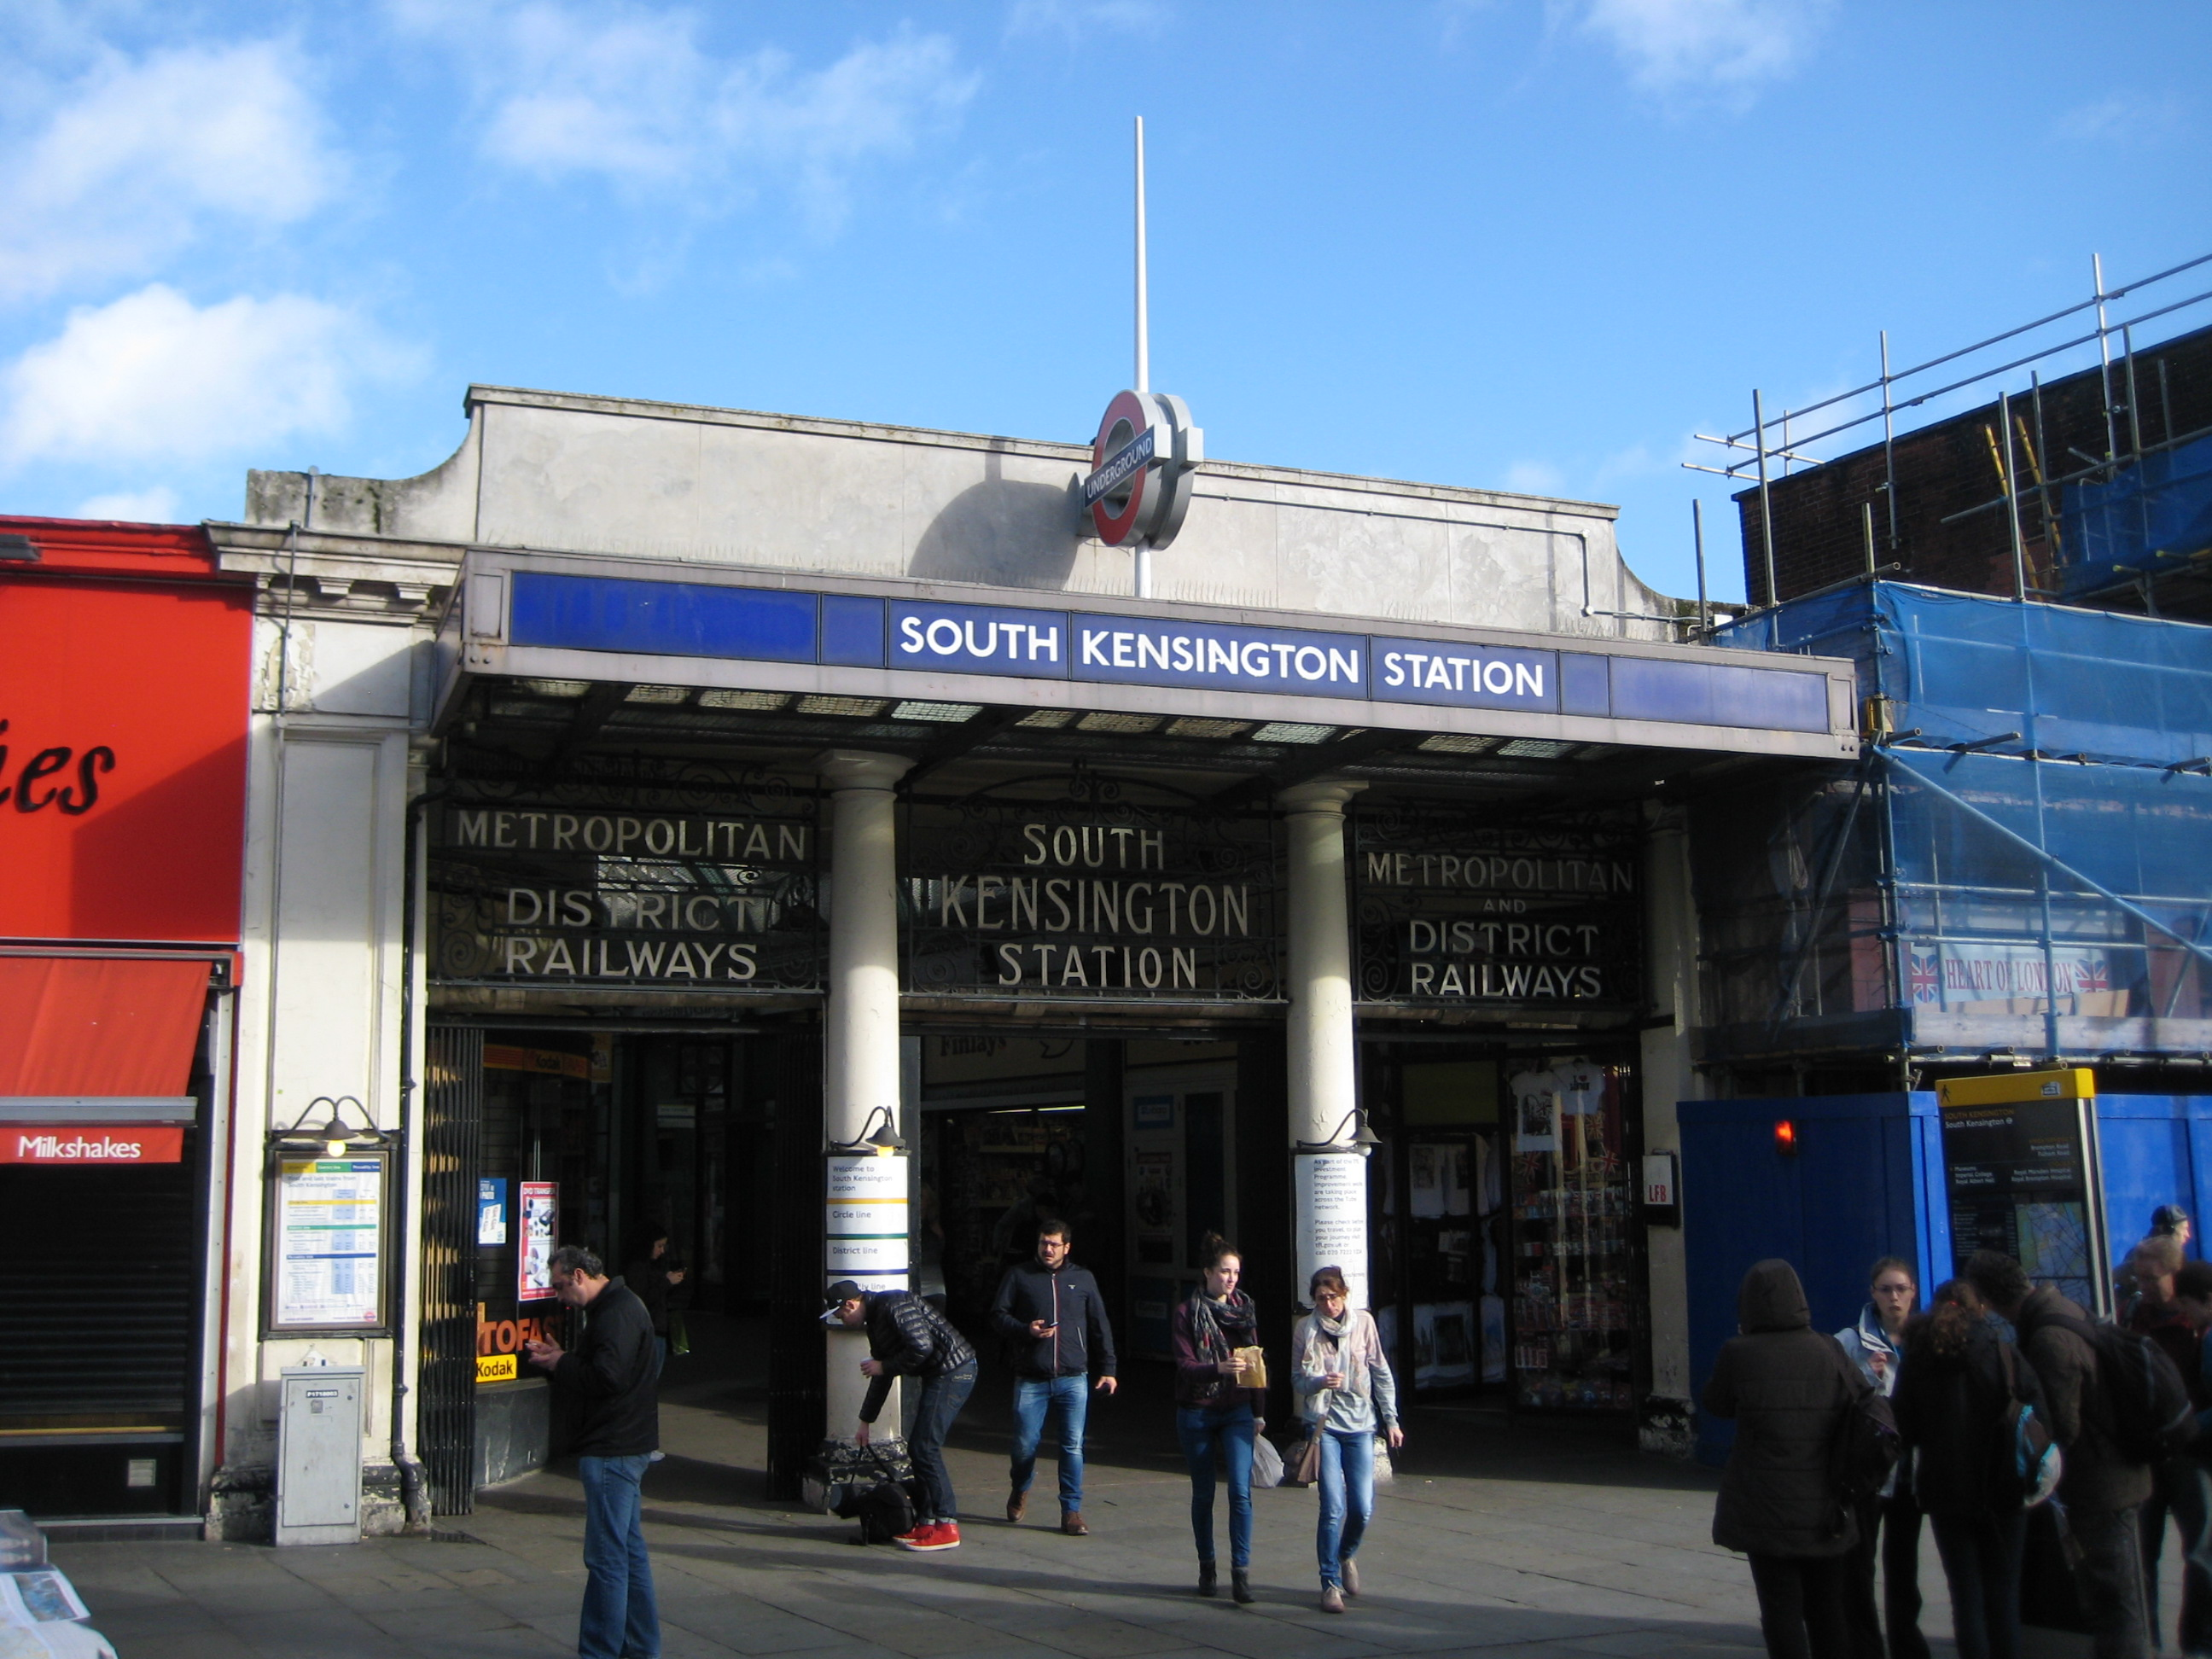 South Kensington station � Robert Mason 2013